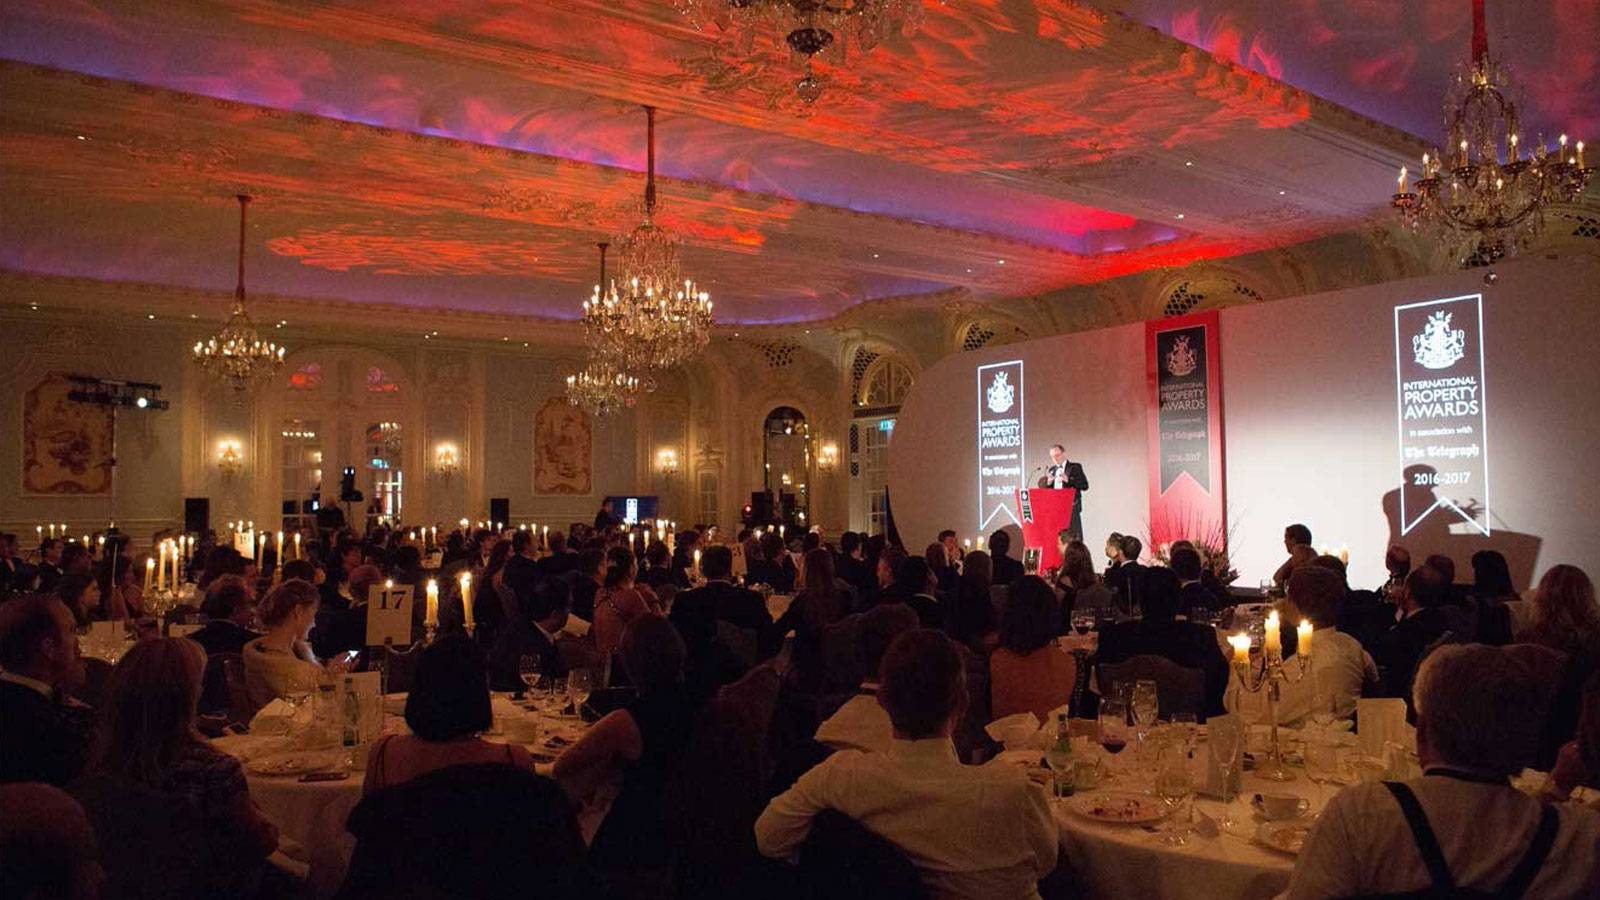 12.12.2016 Results of International Property Awards Had Been Revealed